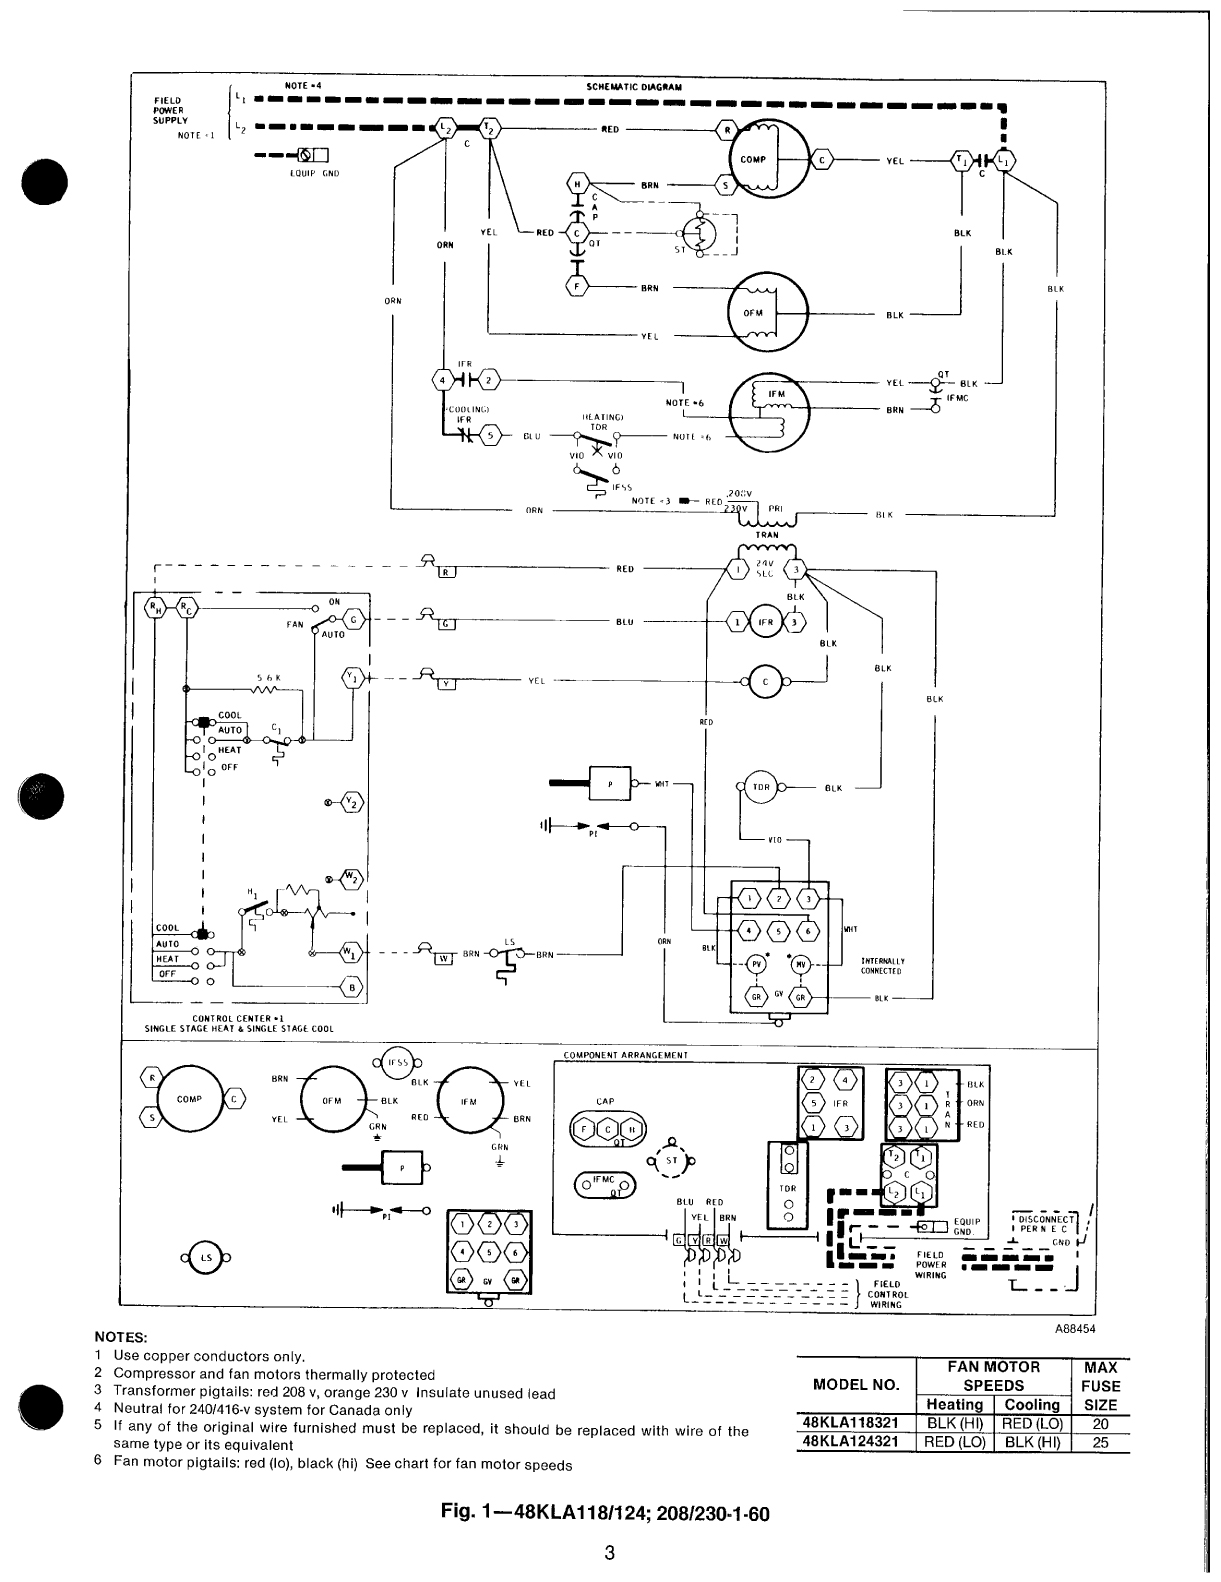 Wiring-Diagram-48KLA124-321BE-3.jpg